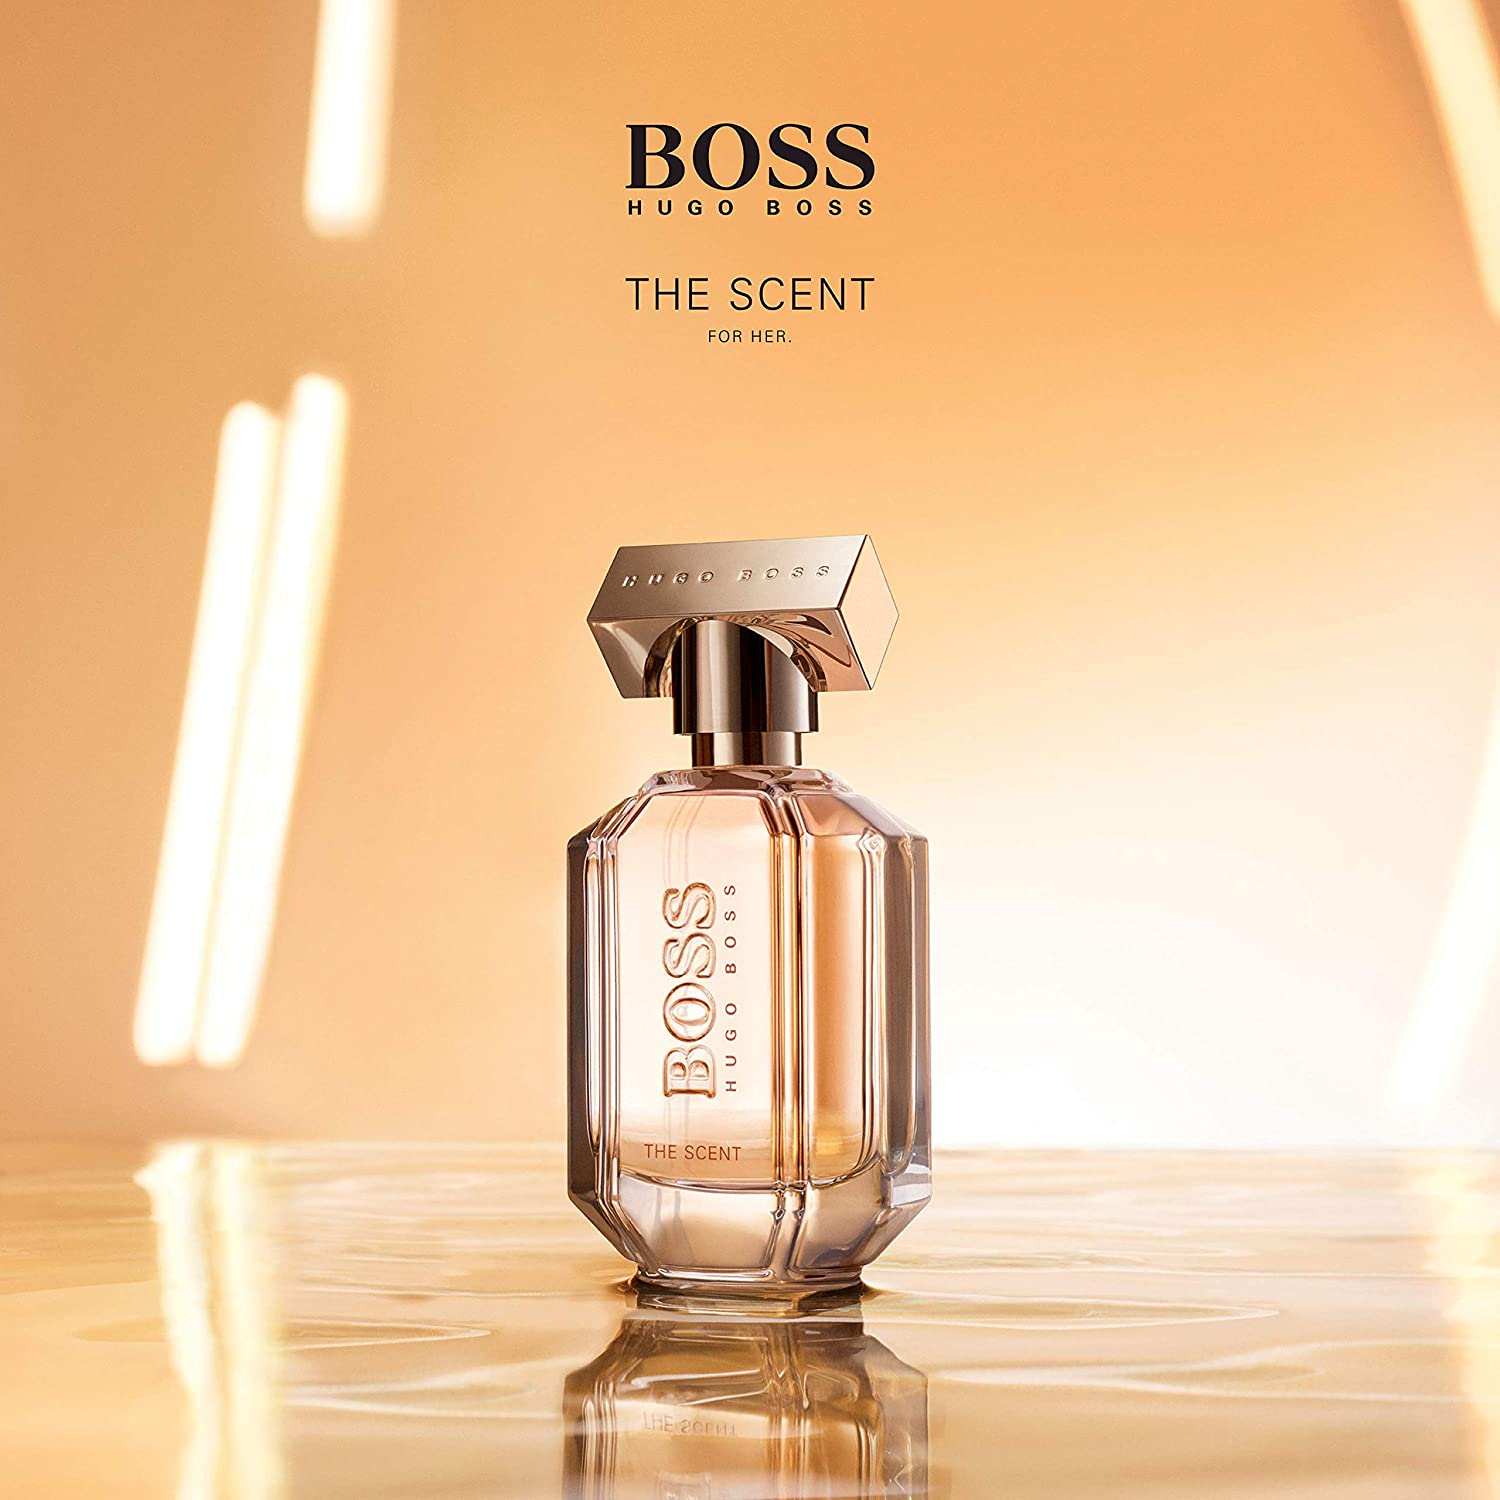 Hugo Boss, The Scent for Her, 50 ml: Amazon.es